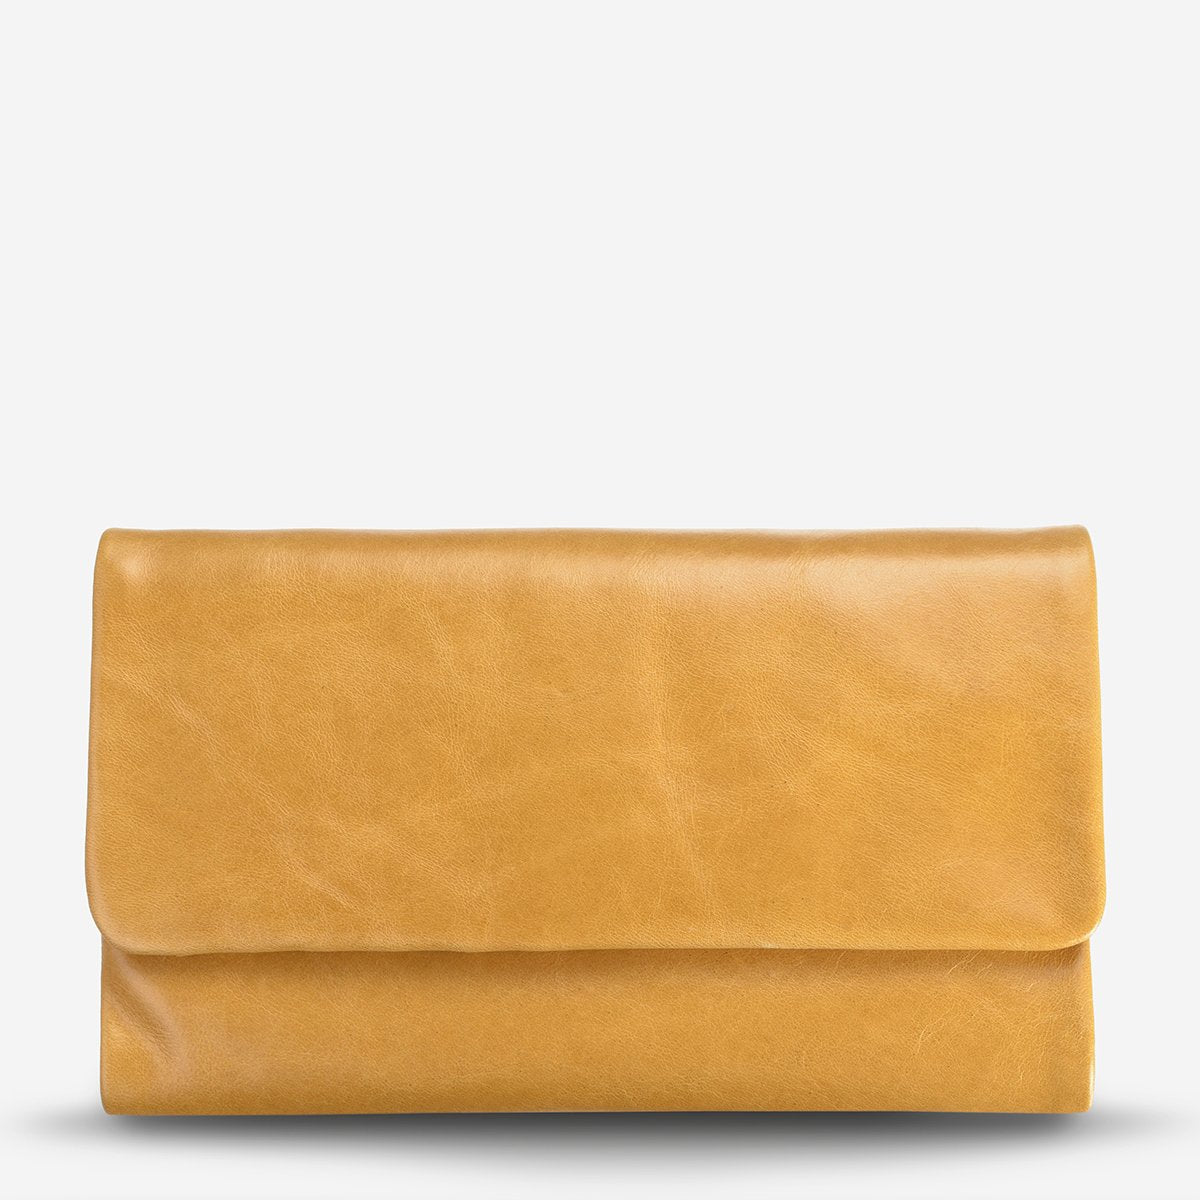 Status Anxiety Audrey Wallet - The Artisan Storeroom